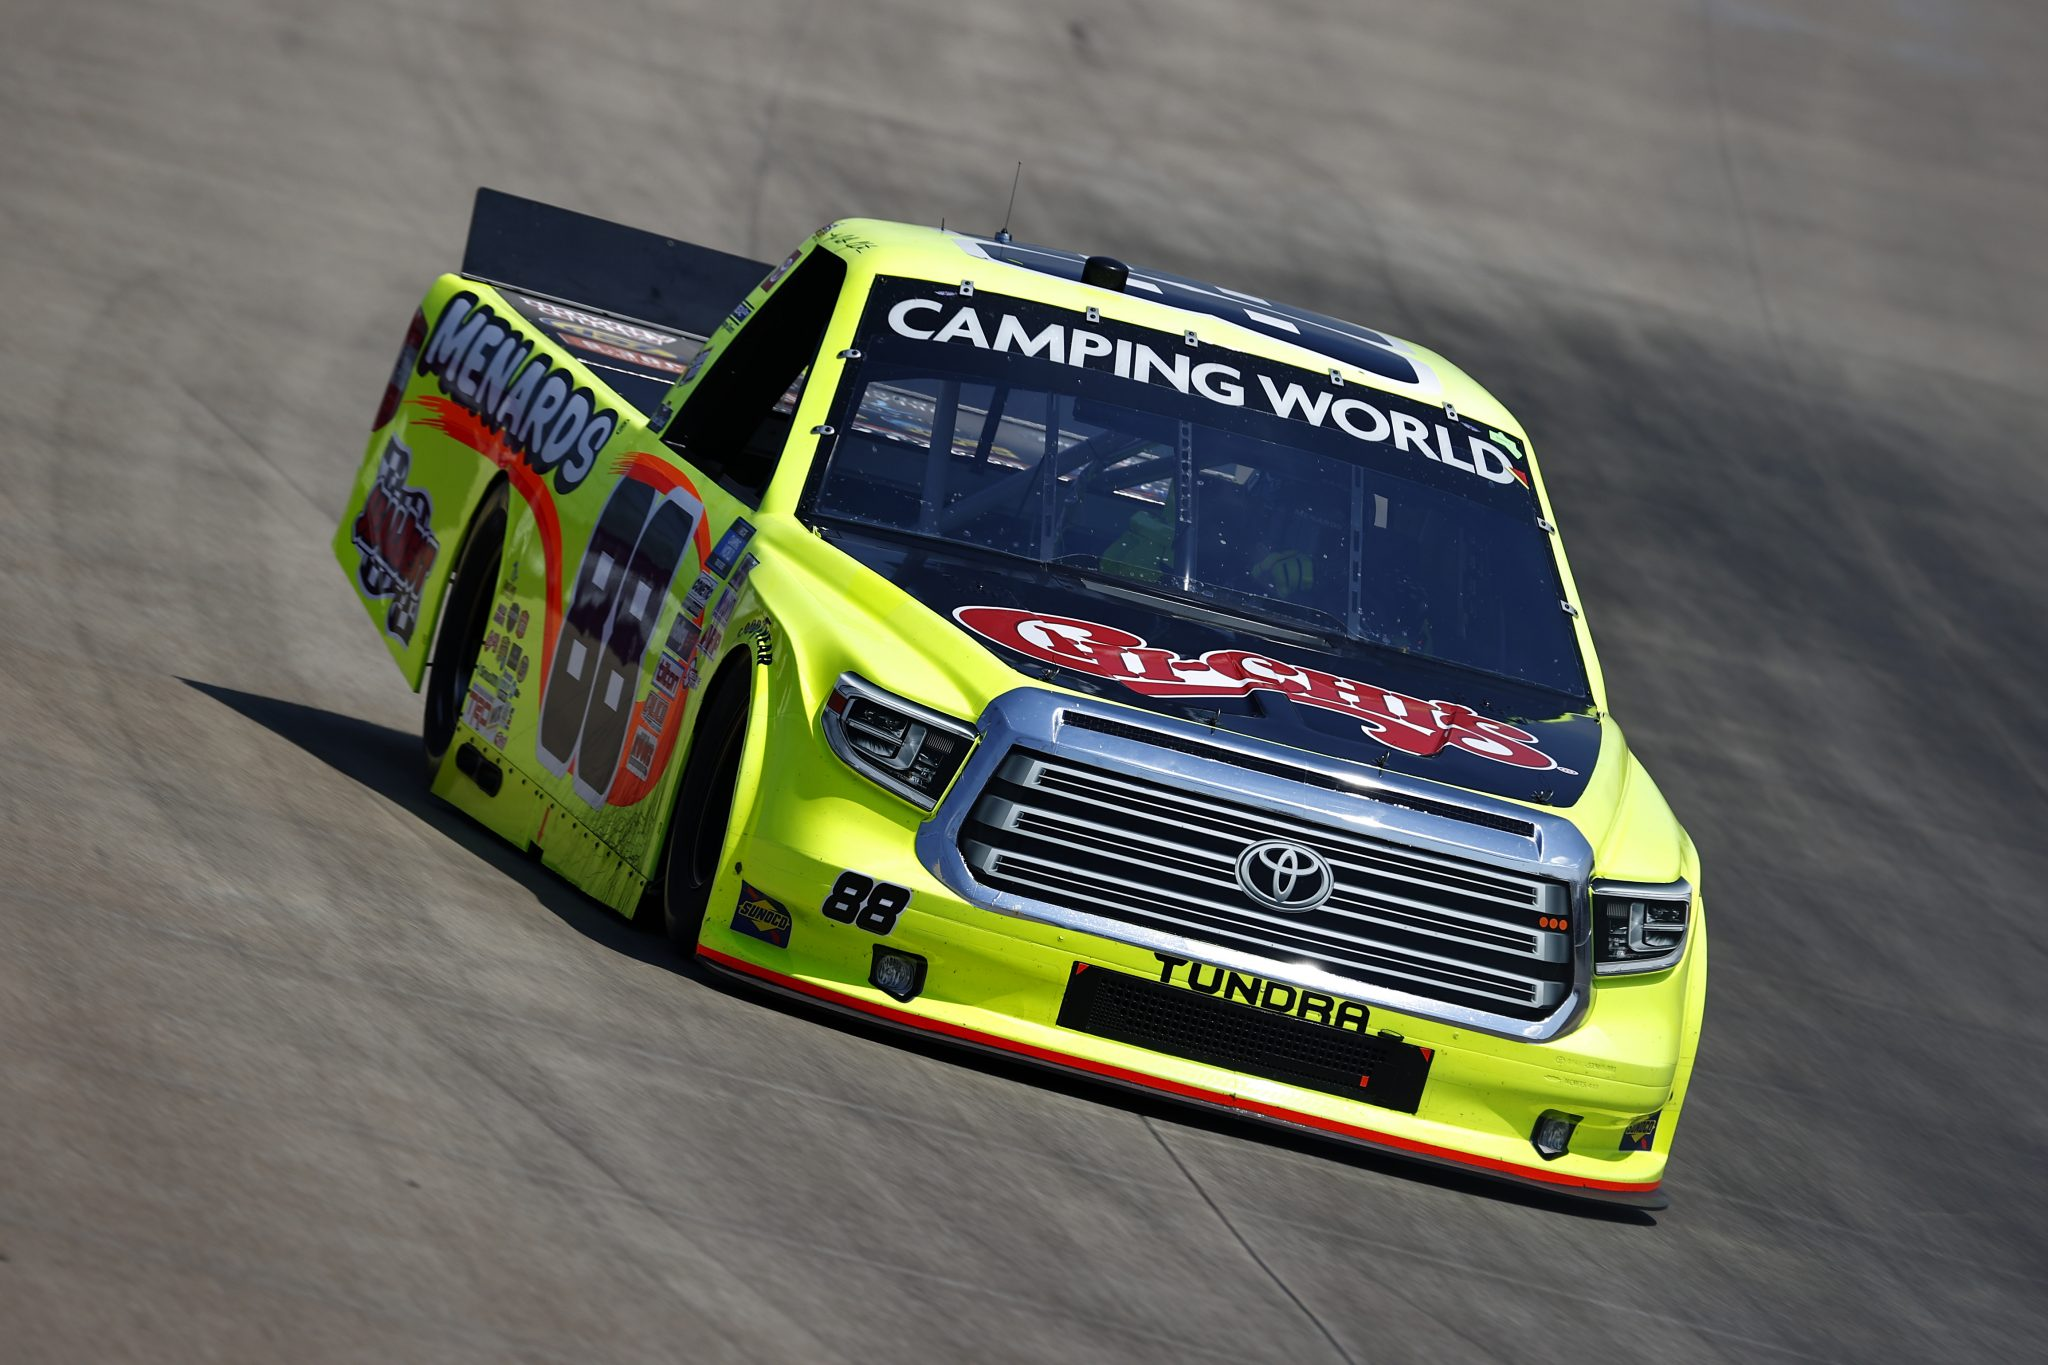 LEBANON, TENNESSEE - JUNE 18: Matt Crafton, driver of the #88 Chi Chi's/Menards Toyota, drives during practice for the NASCAR Camping World Truck Series Rackley Roofing 200 at Nashville Superspeedway on June 18, 2021 in Lebanon, Tennessee. (Photo by Jared C. Tilton/Getty Images) | Getty Images